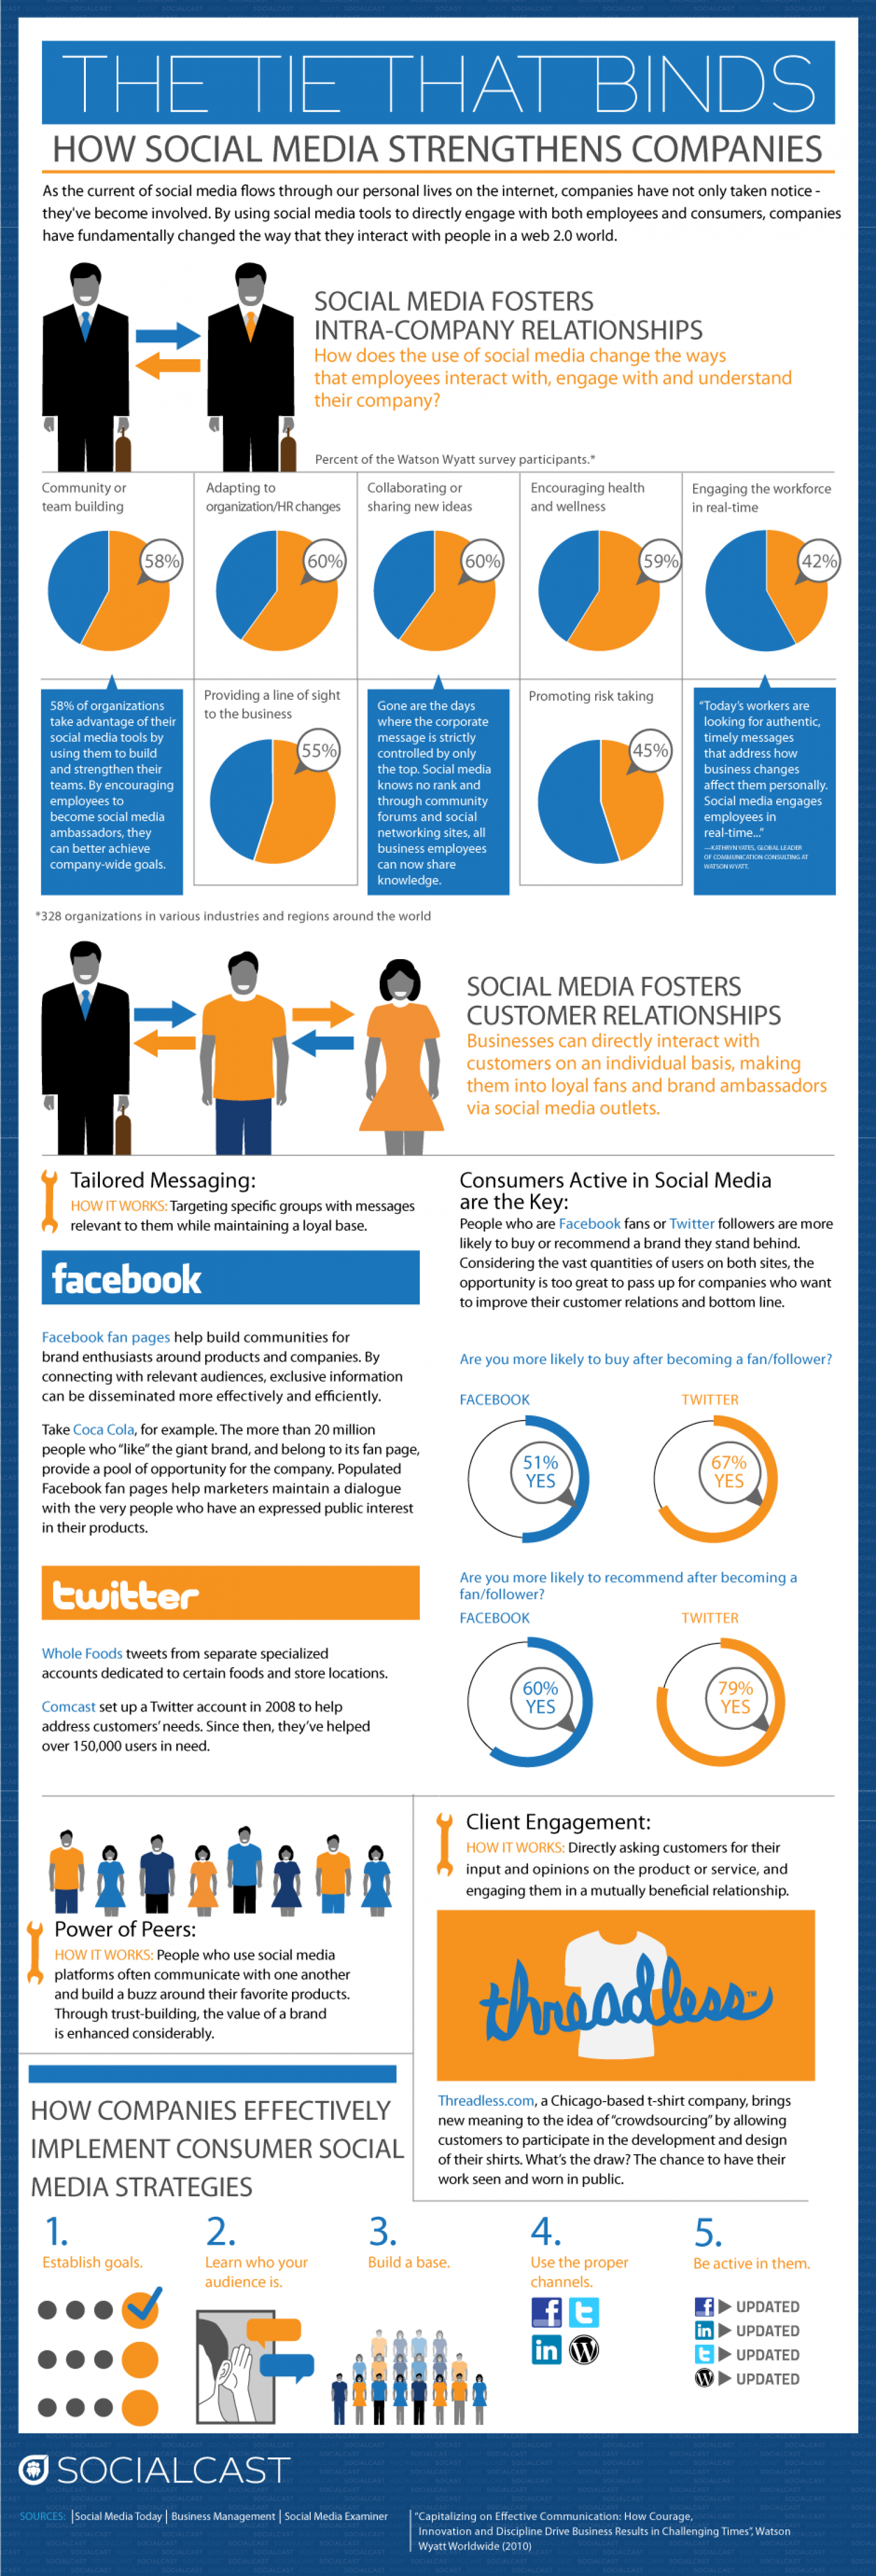 Why is social media good for companies? Infographic